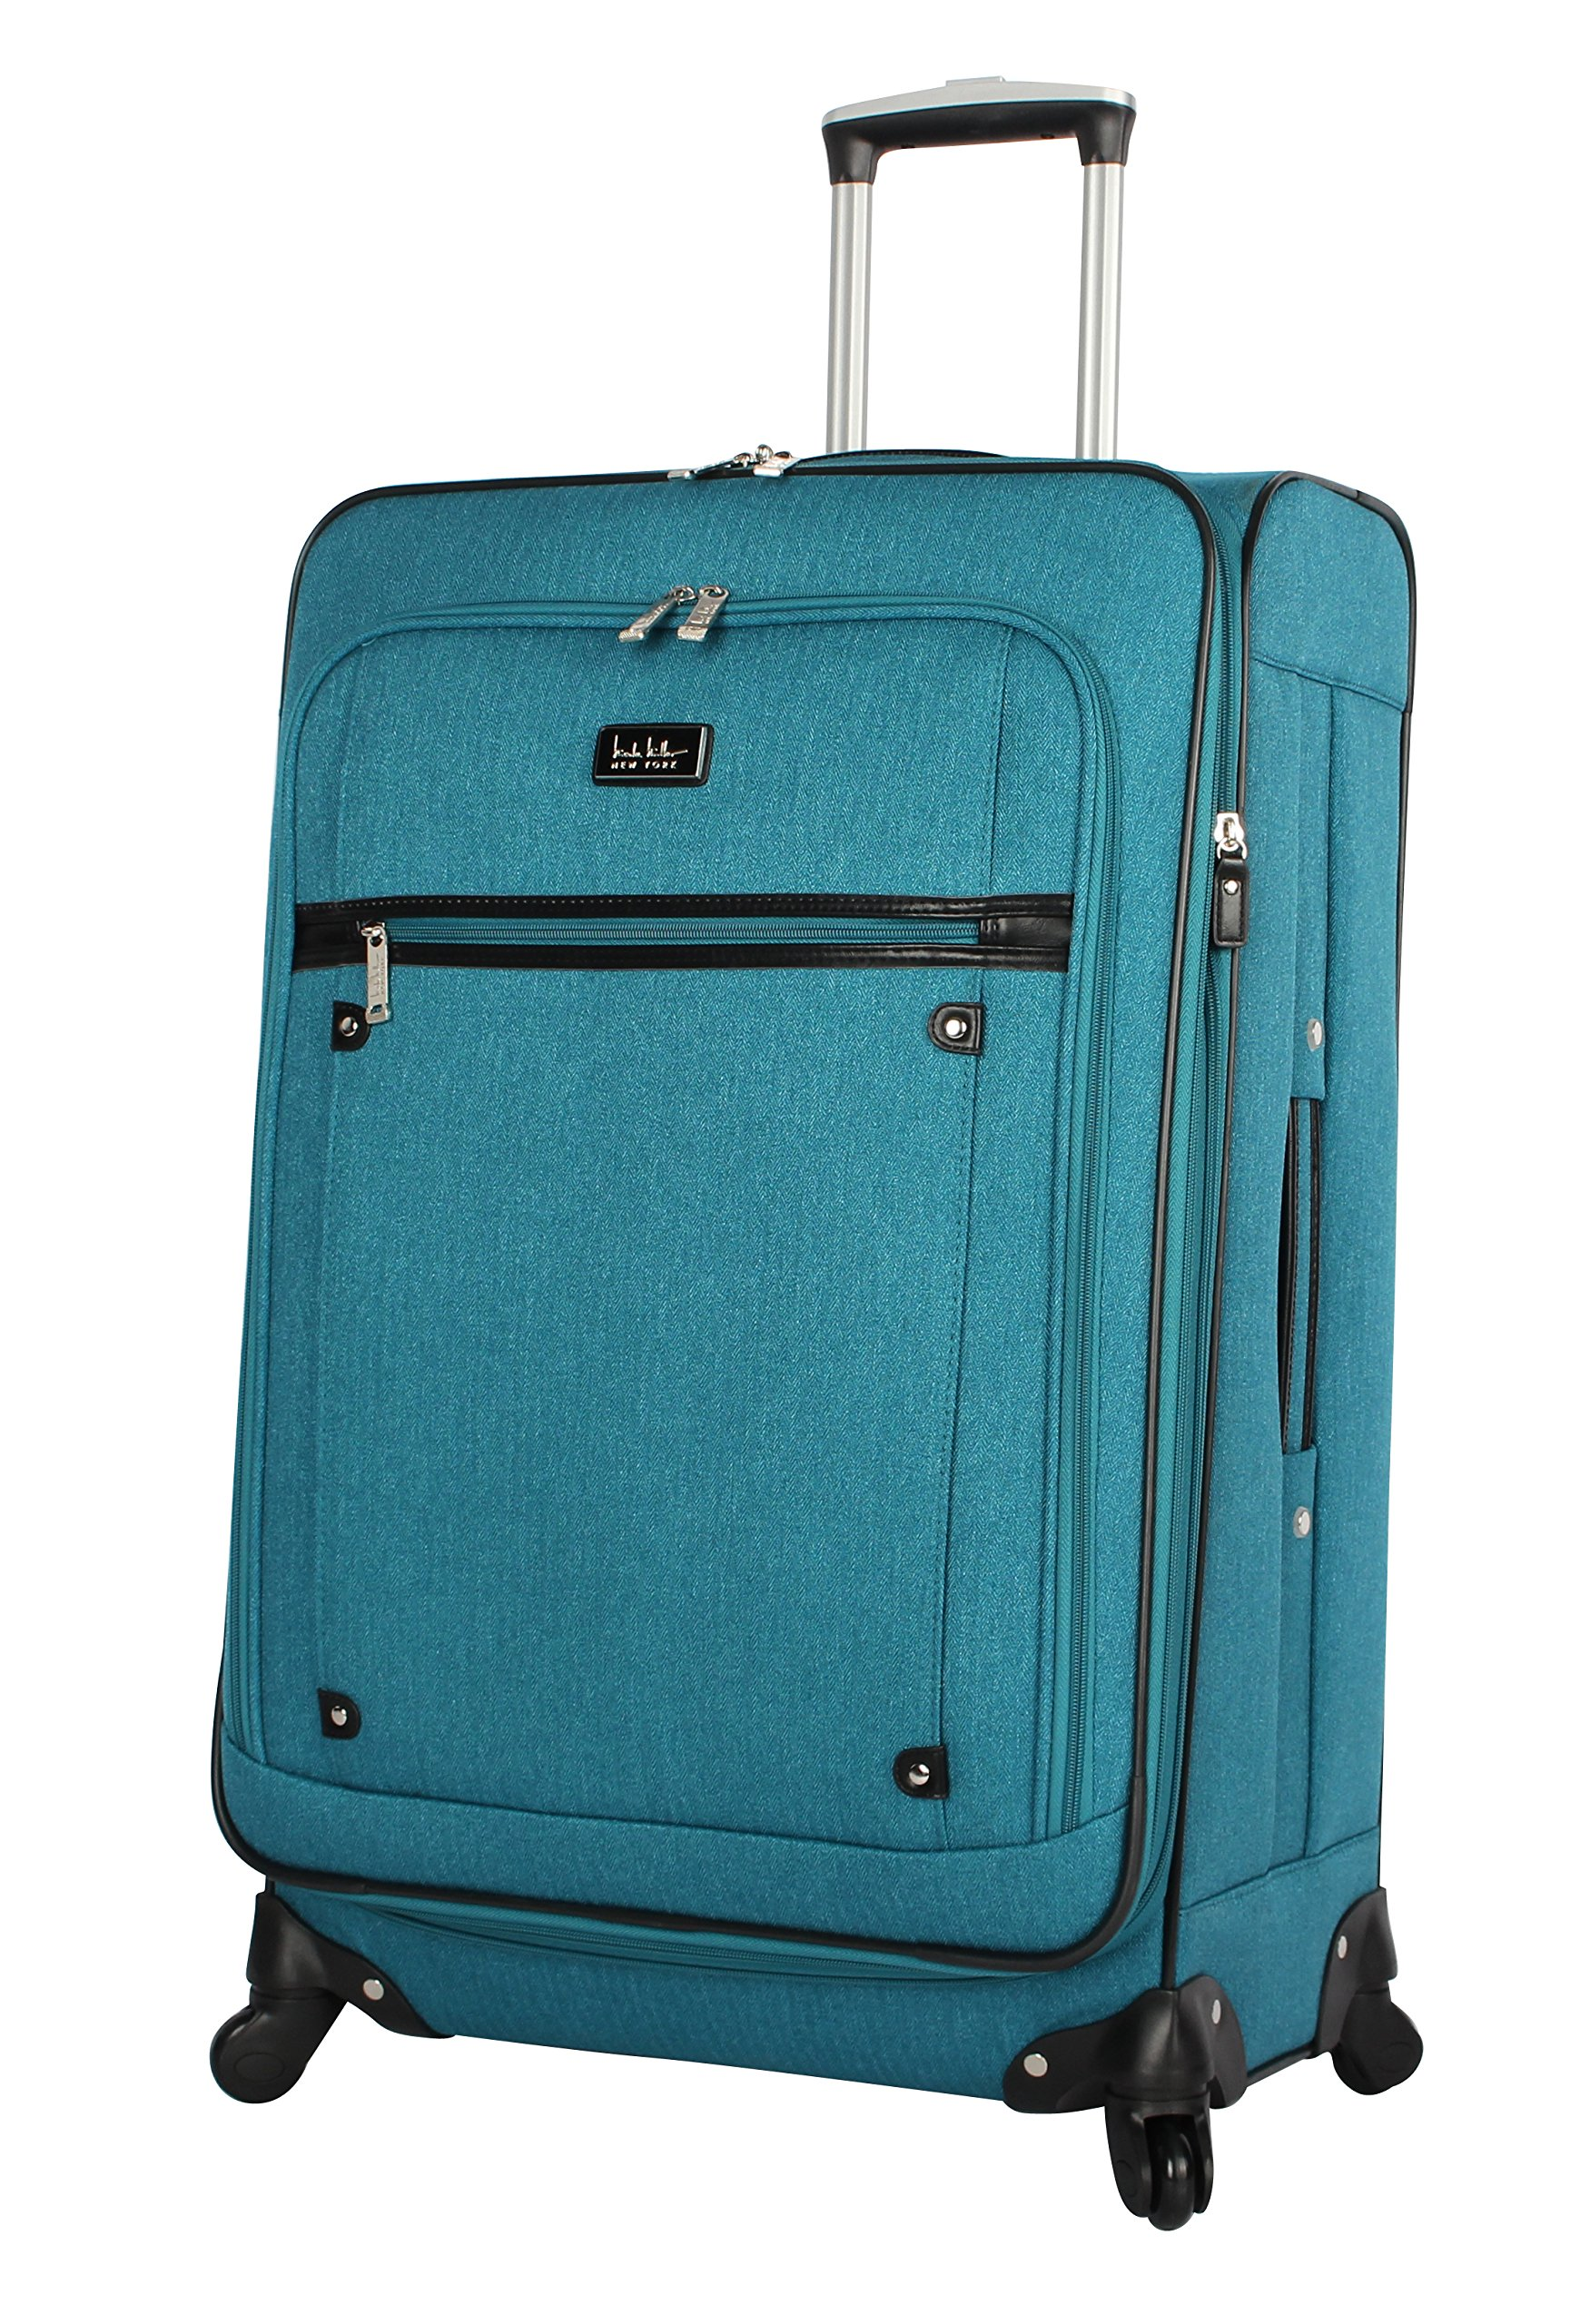 Nicole Miller New York Rosalie Collection 20'' Expandable Luggage Spinner (Teal)